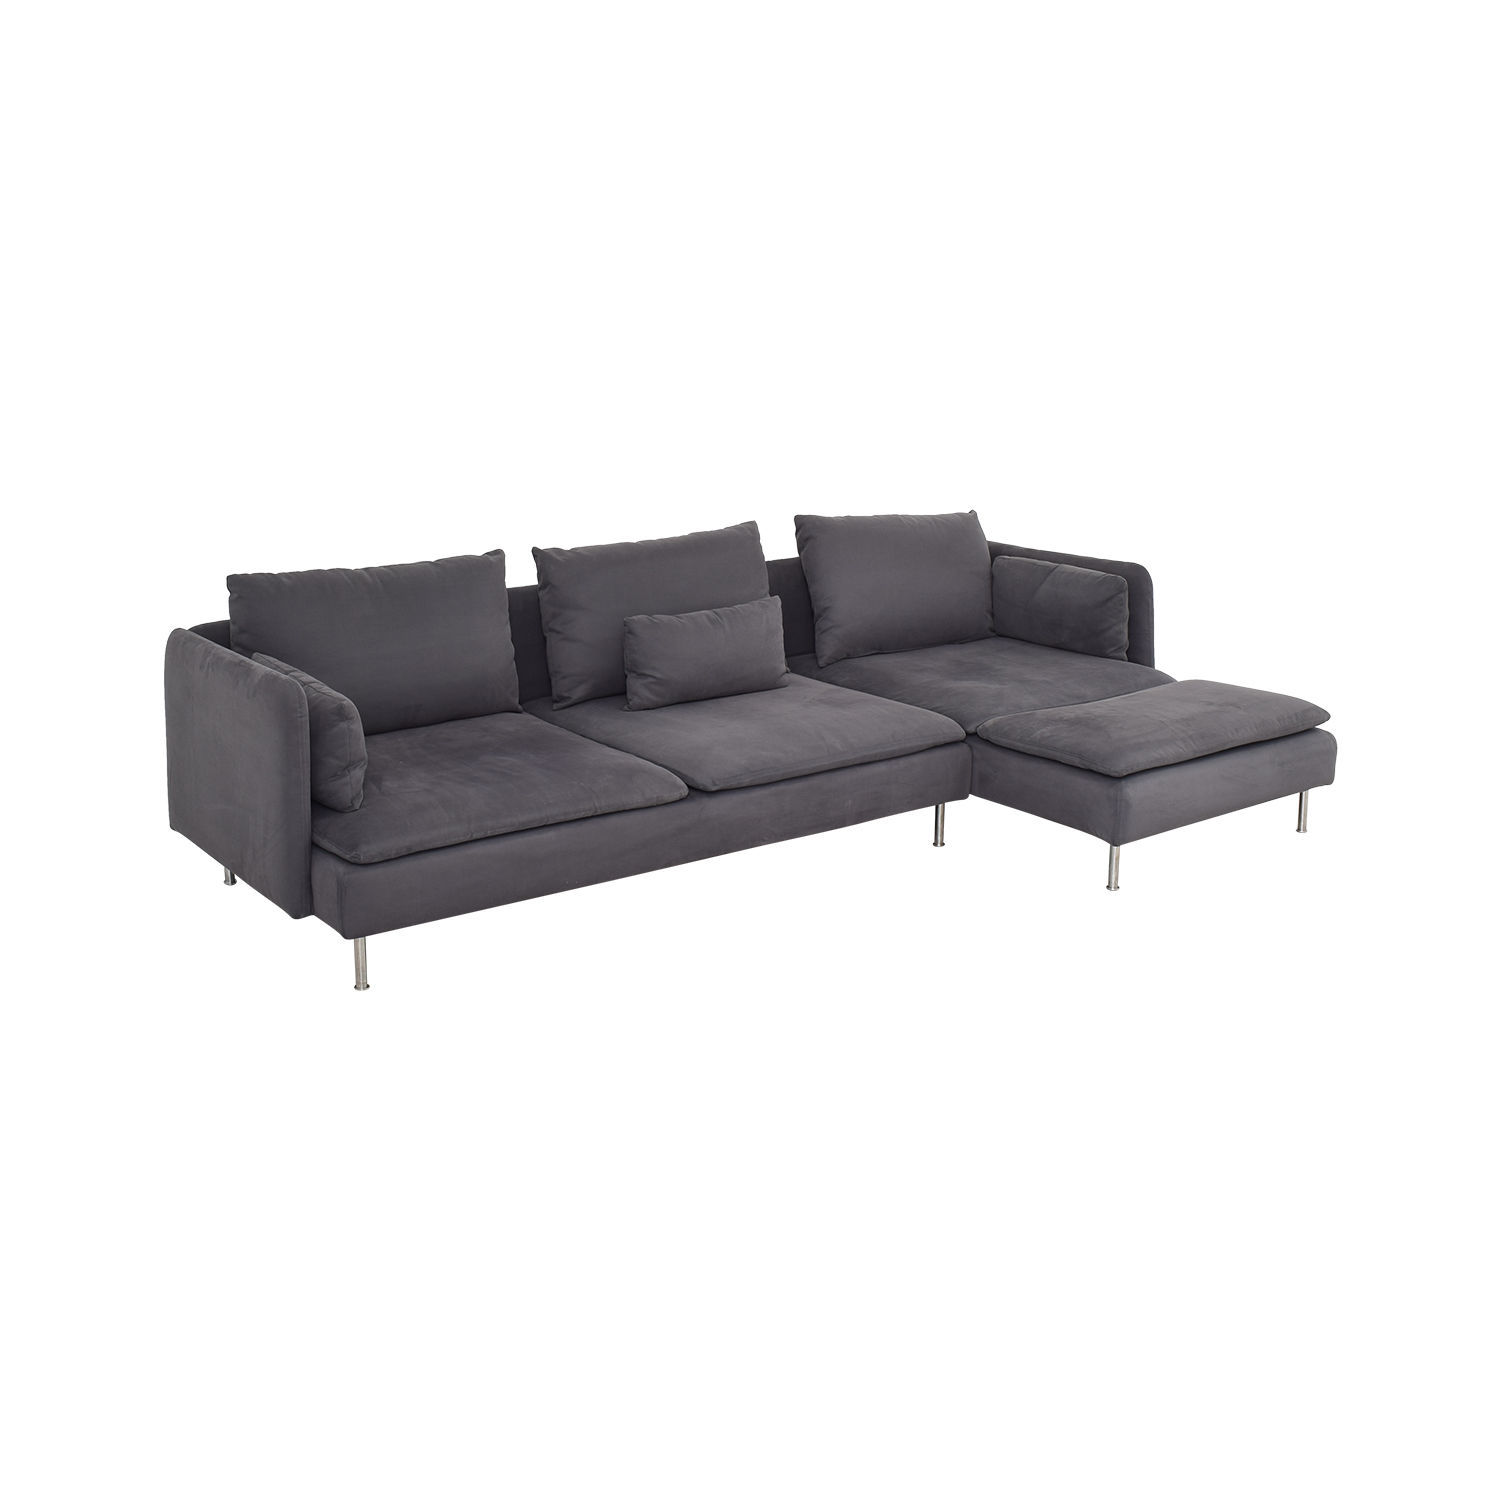 Enjoyable 20 Off Ikea Ikea Soderhamn Sectional Sofa With Chaise Sofas Pdpeps Interior Chair Design Pdpepsorg